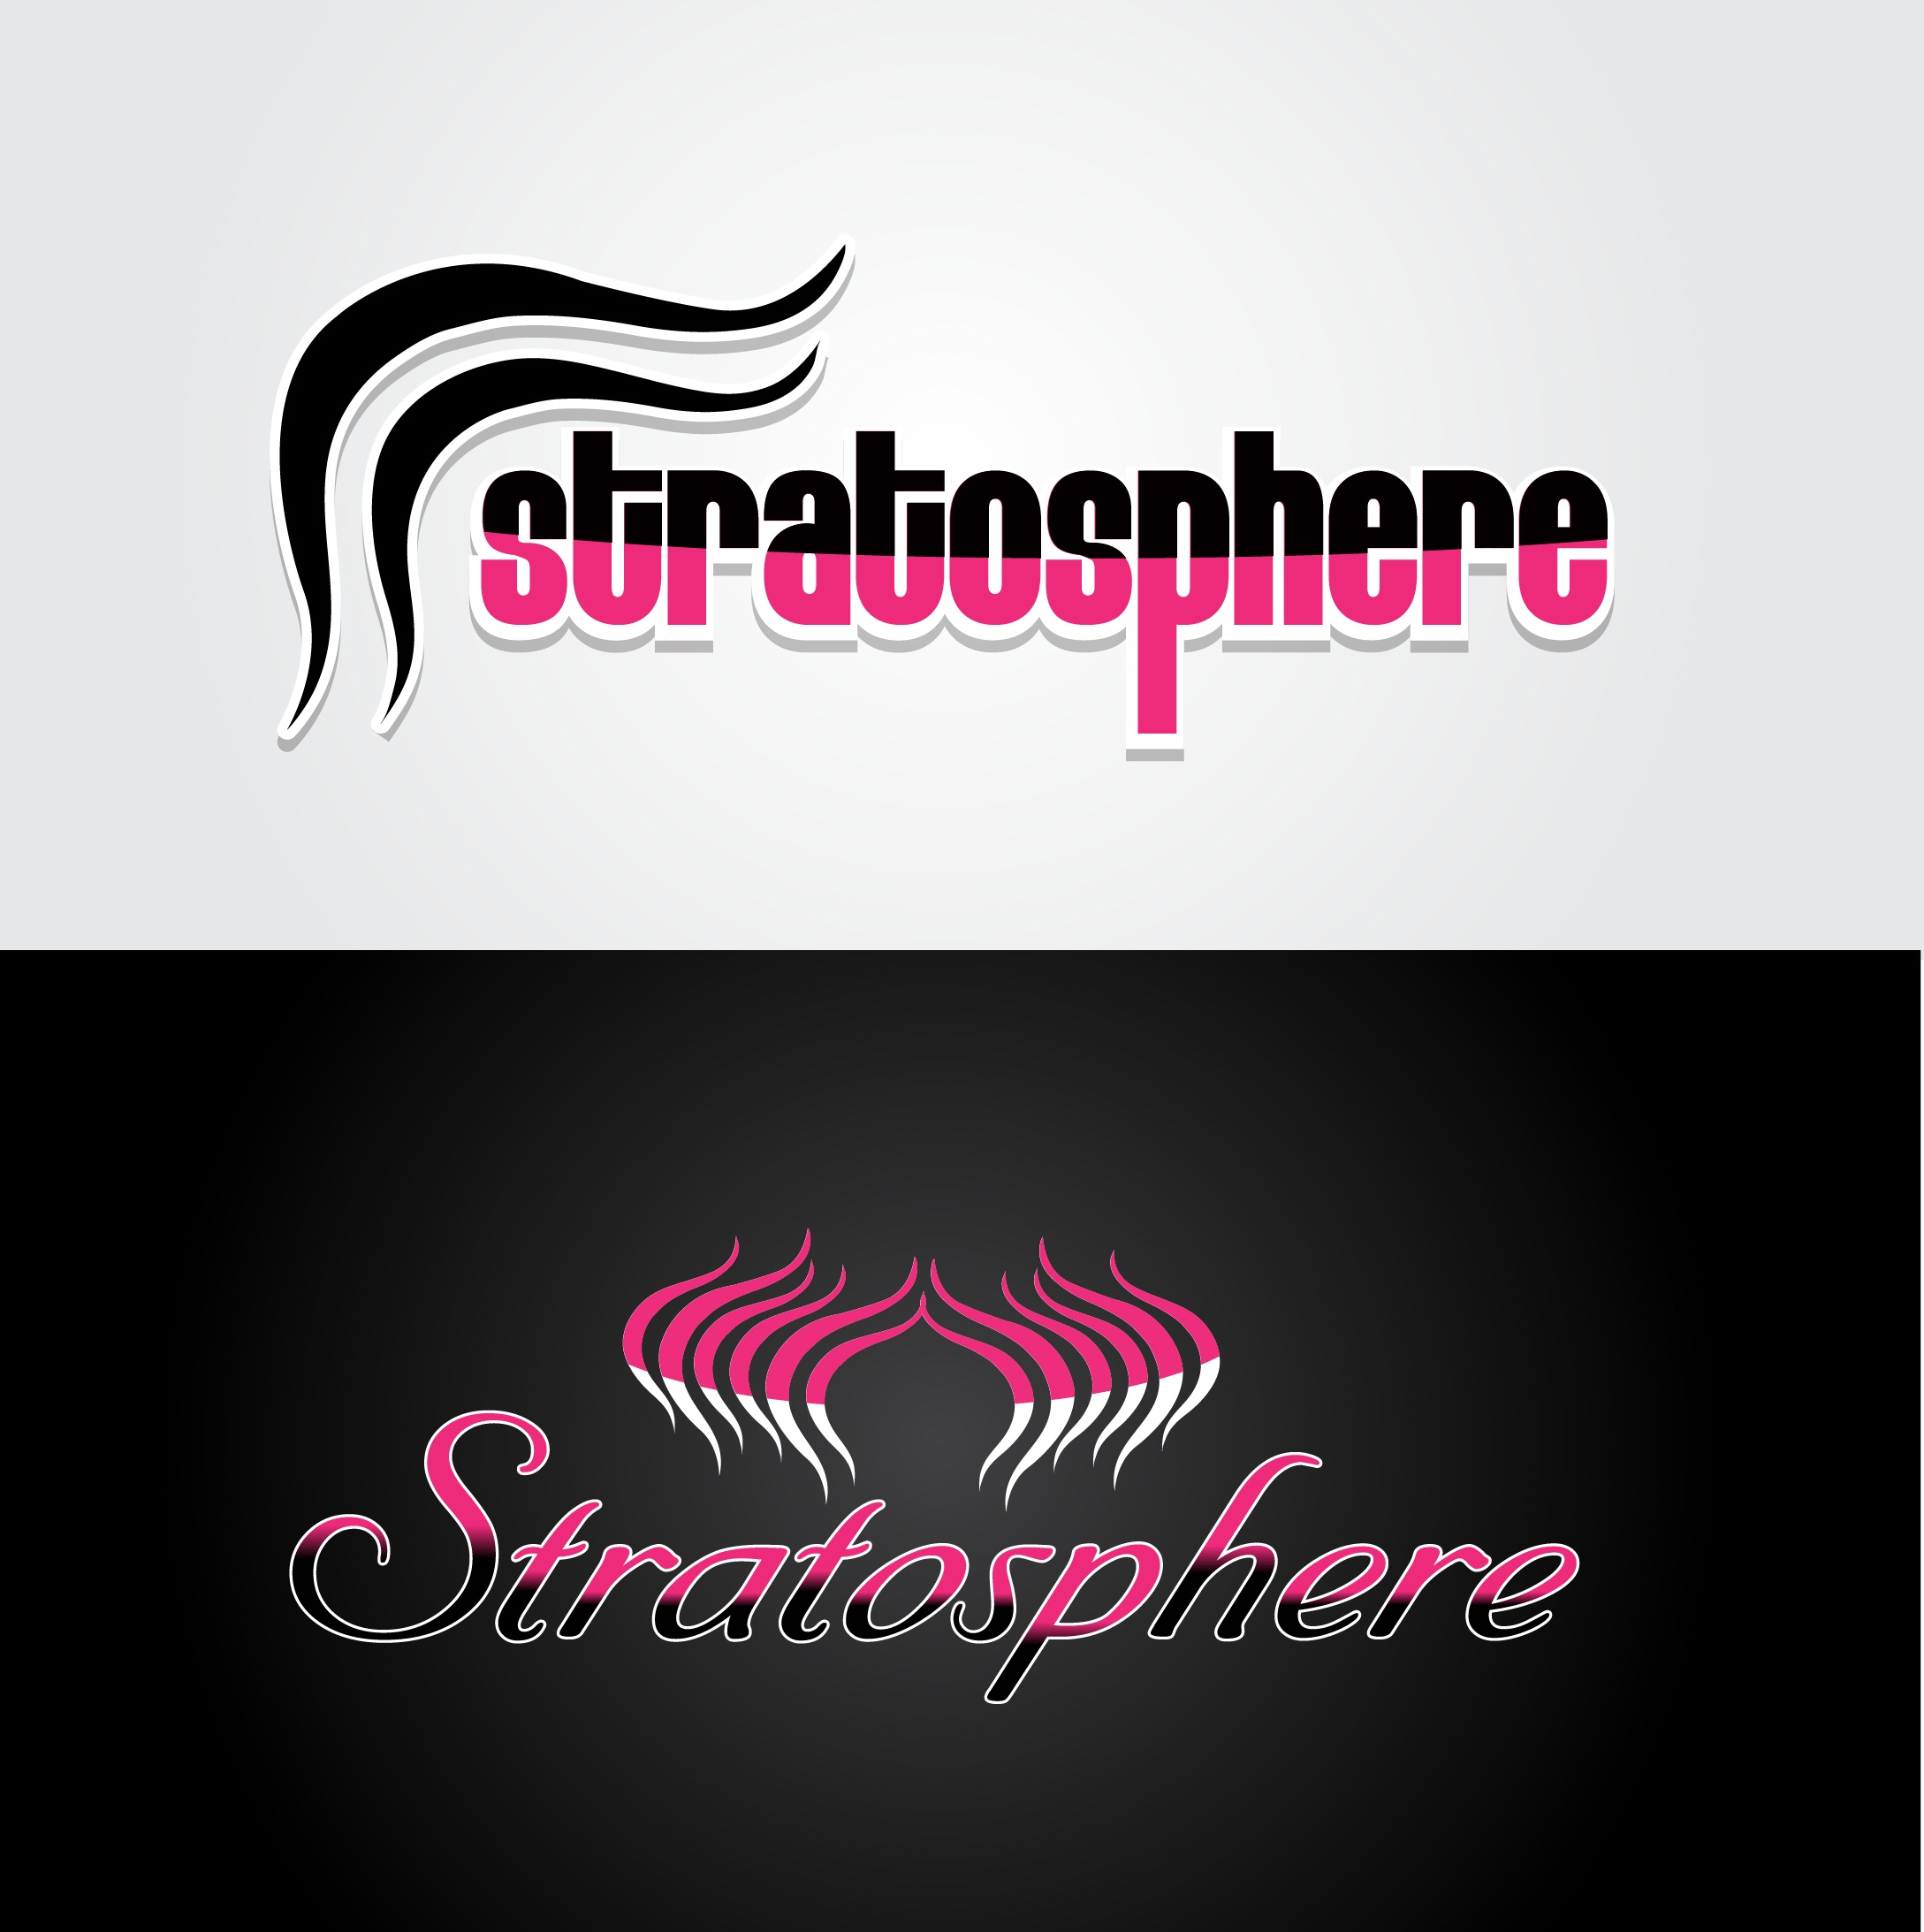 Logo Design by mediaproductionart - Entry No. 17 in the Logo Design Contest Captivating Logo Design for Stratosphere.